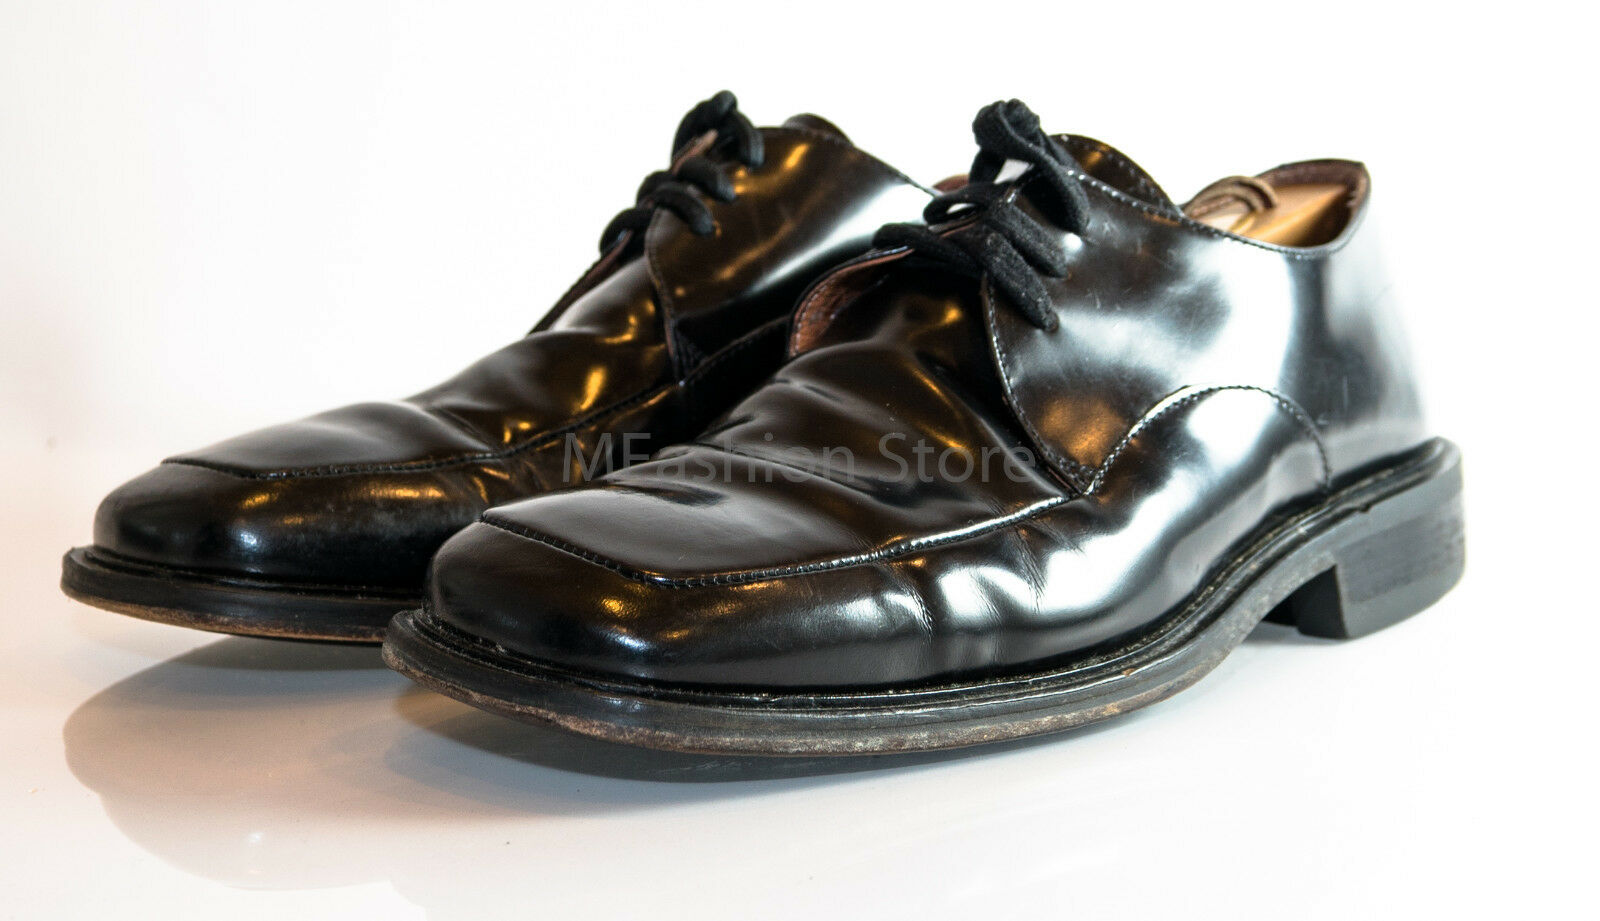 Bacco Bucci shoes Black Leather Dress Oxford Lace Up ITALY Size US 9.5M